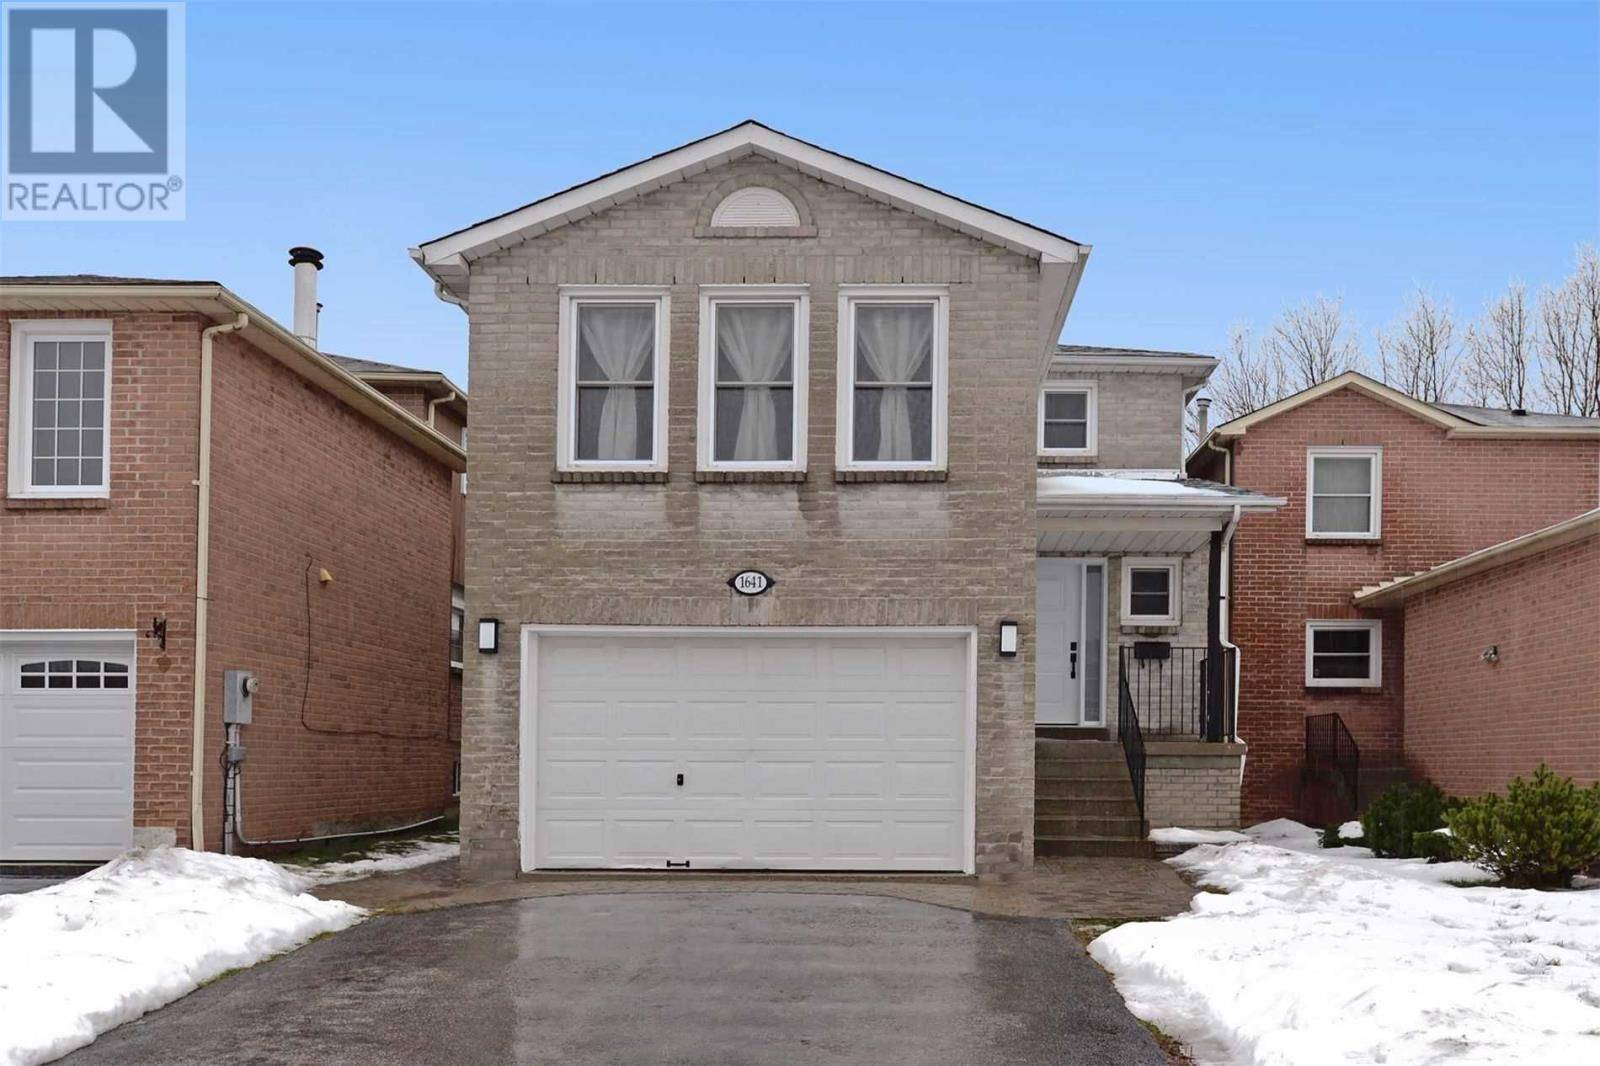 House for sale at 1641 Fairfield Cres Pickering Ontario - MLS: E4663758